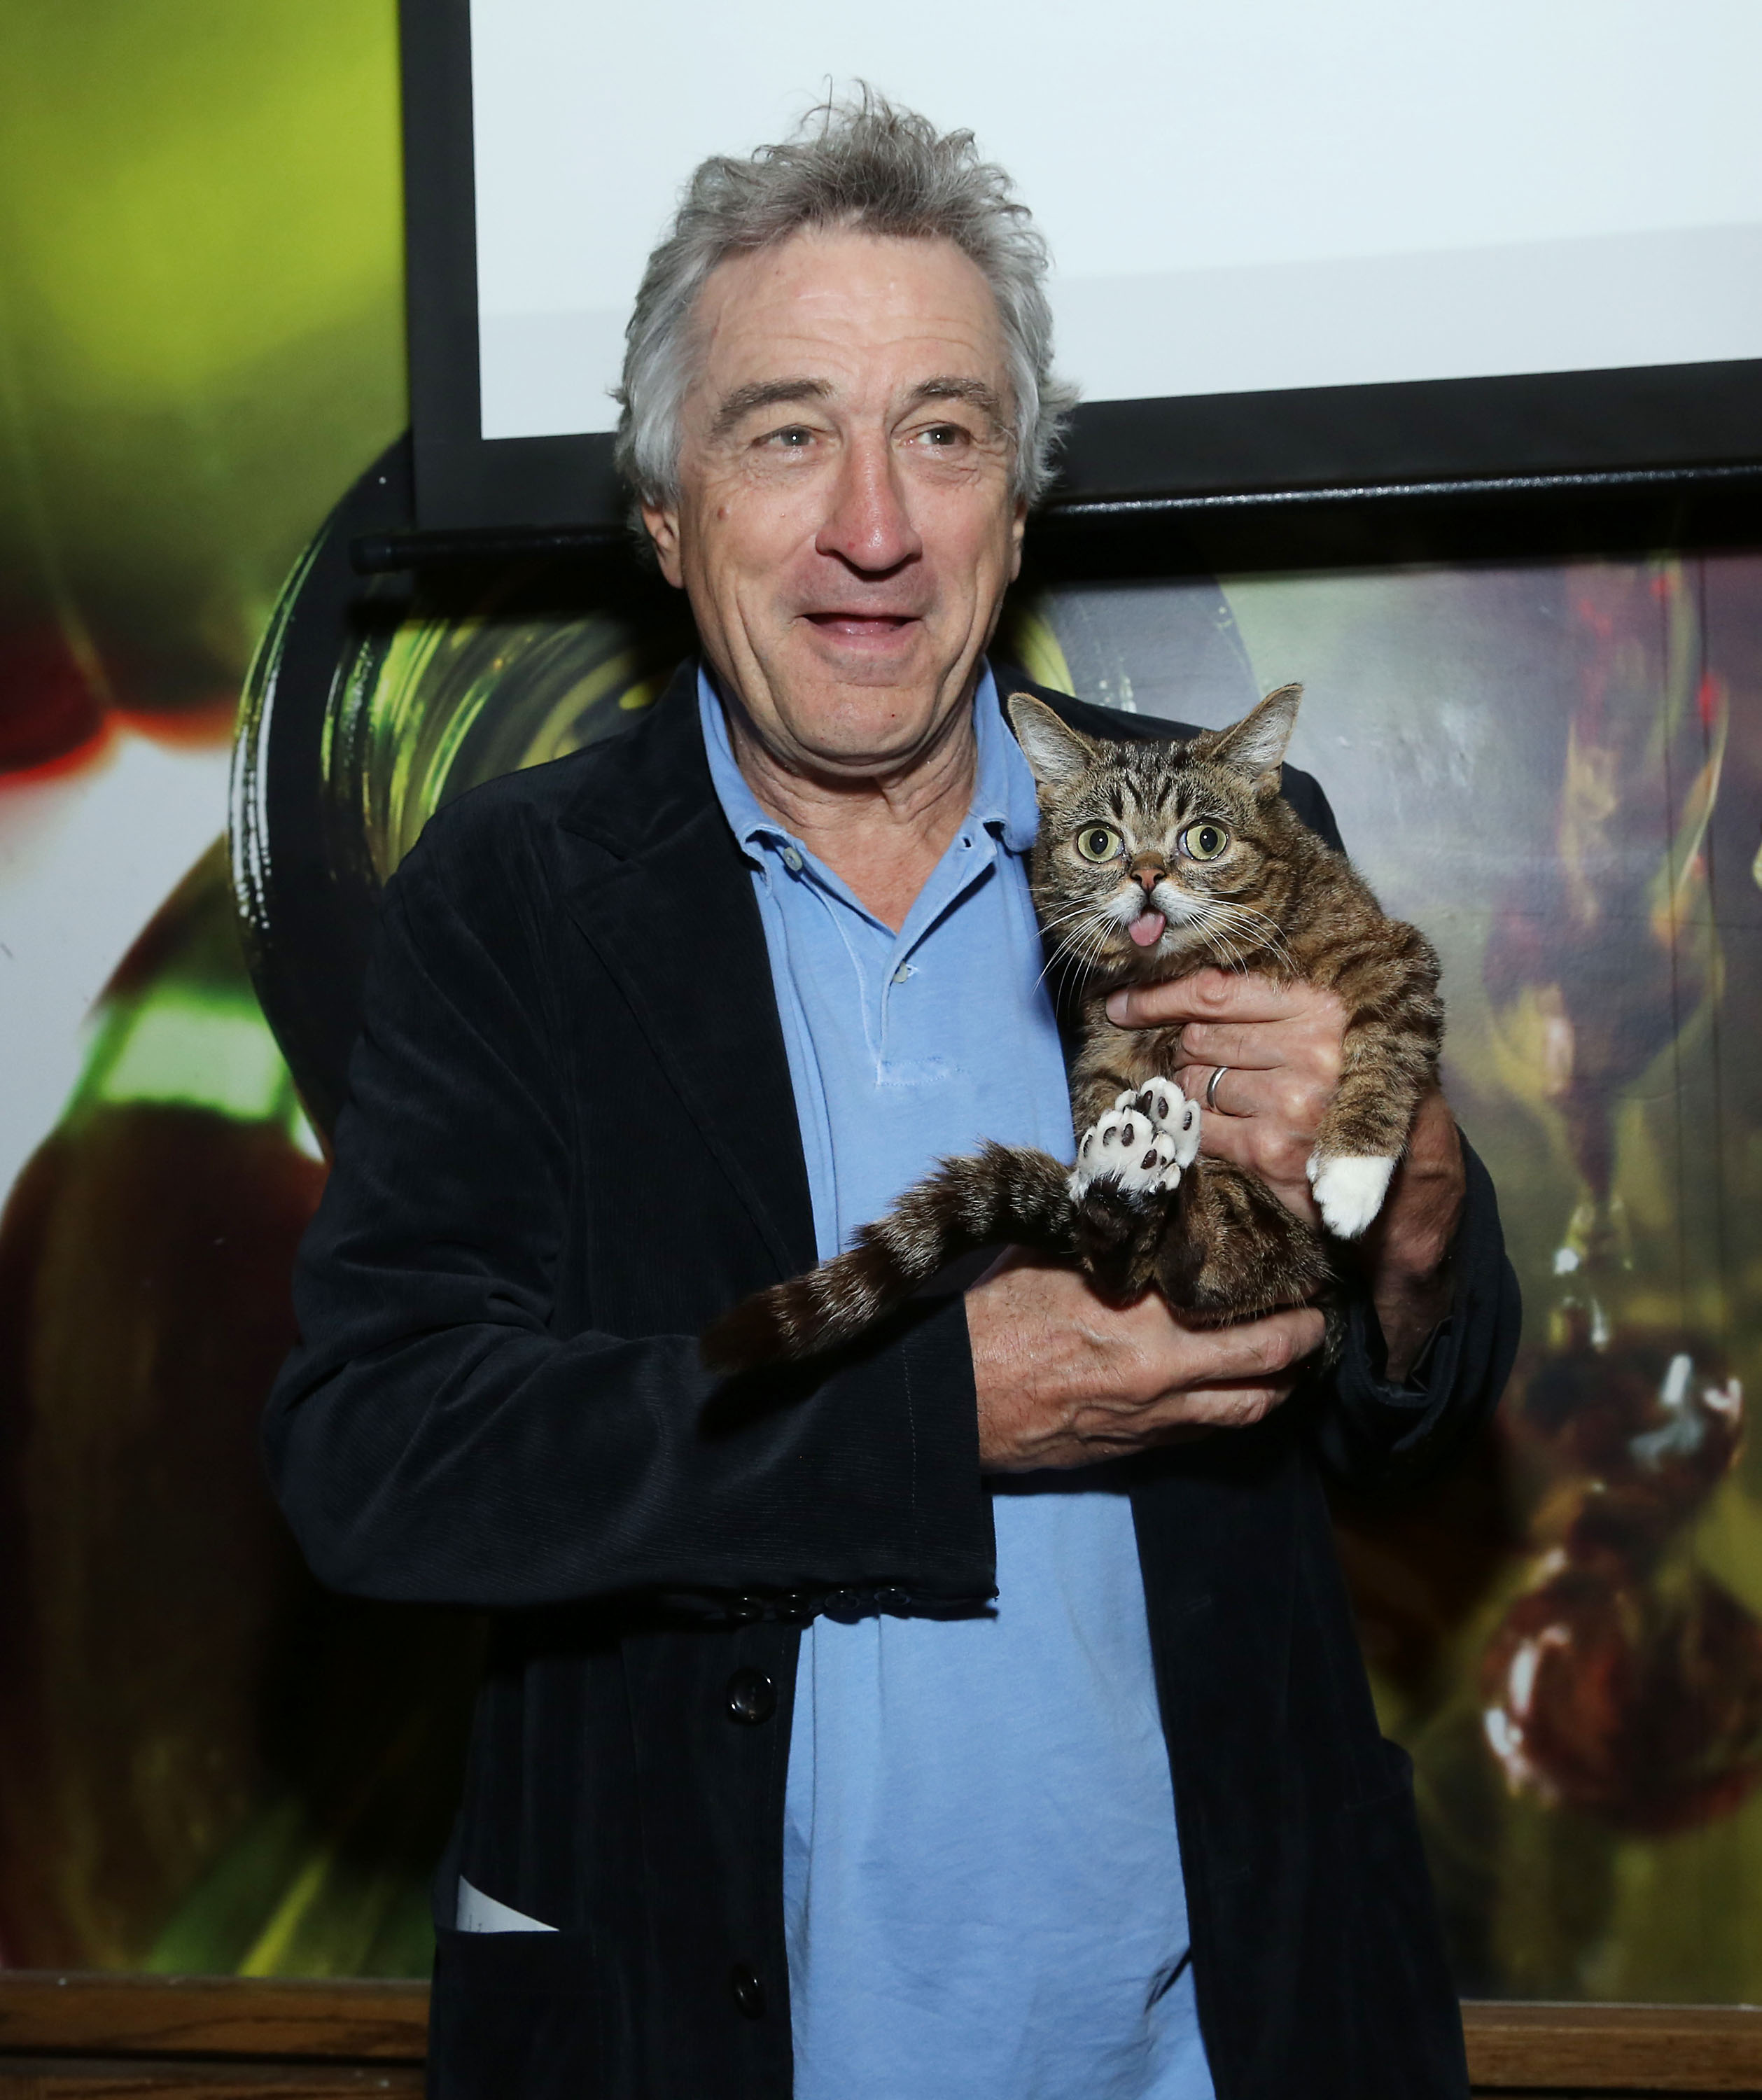 Robert De Niro cozied up to famous cat Lil Bub at Tribeca Film Festival's directors brunch.